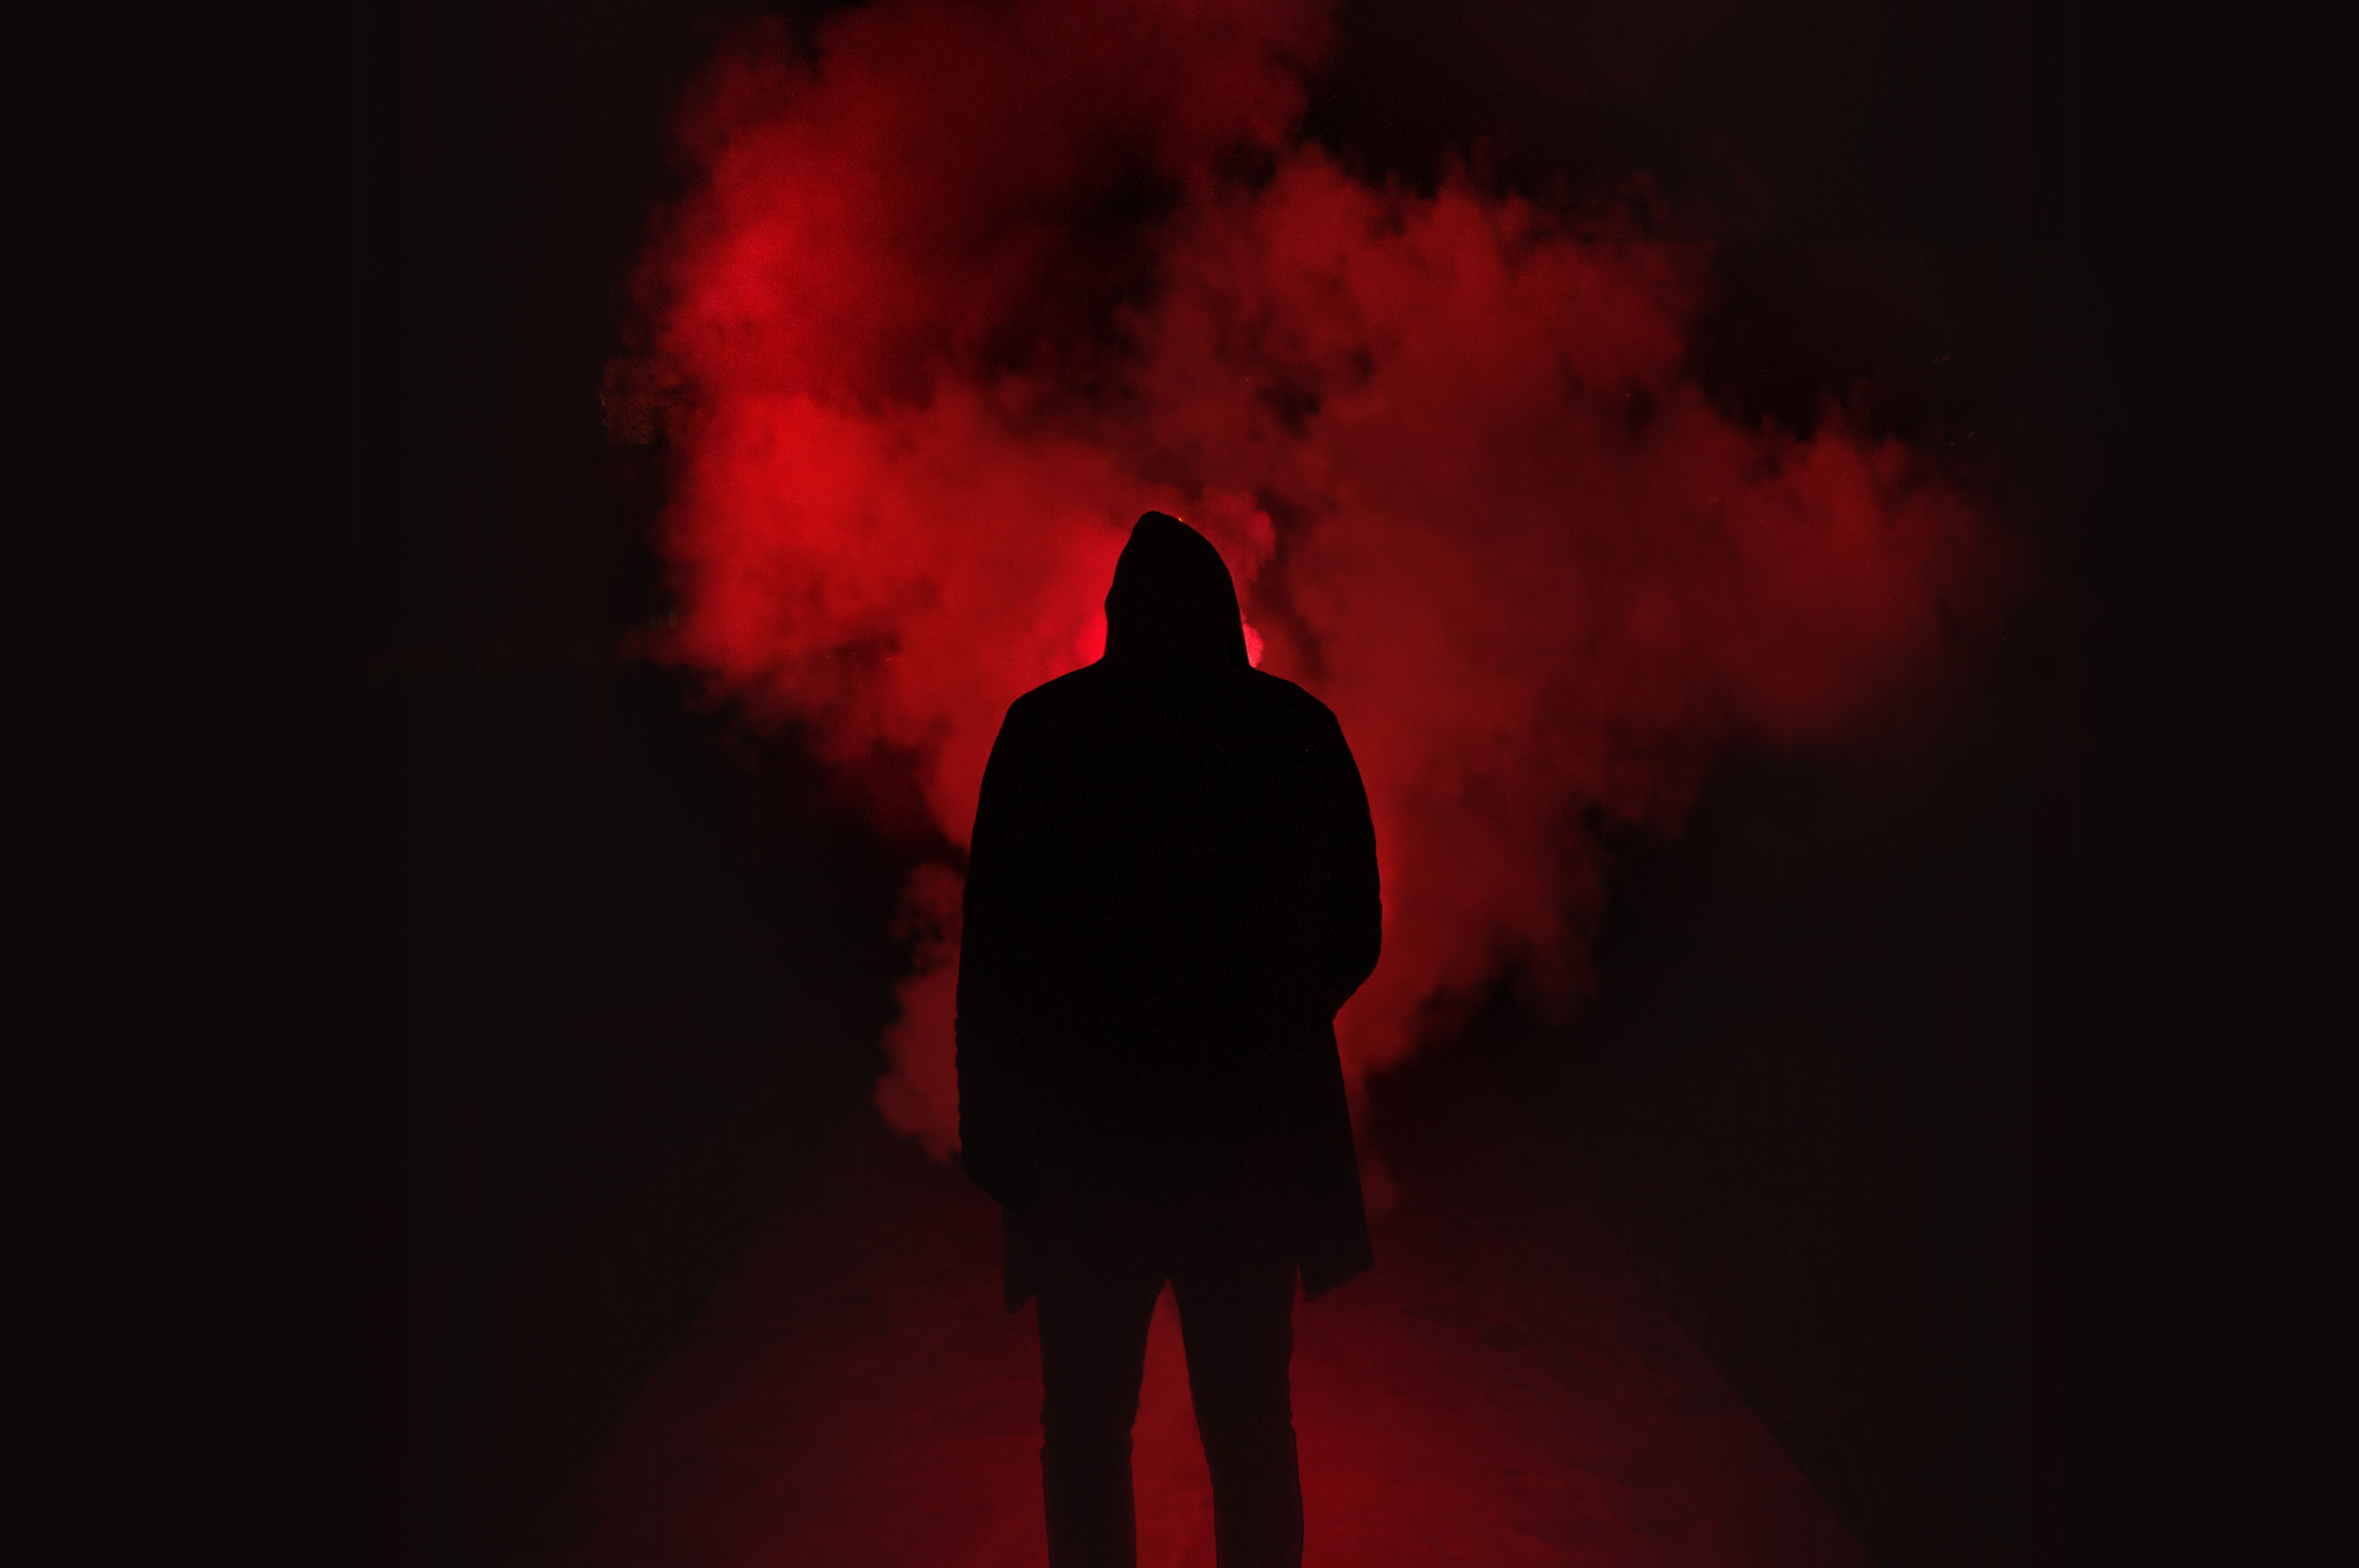 Black And Red >> Silhouette Of Man Standing Against Black And Red Background